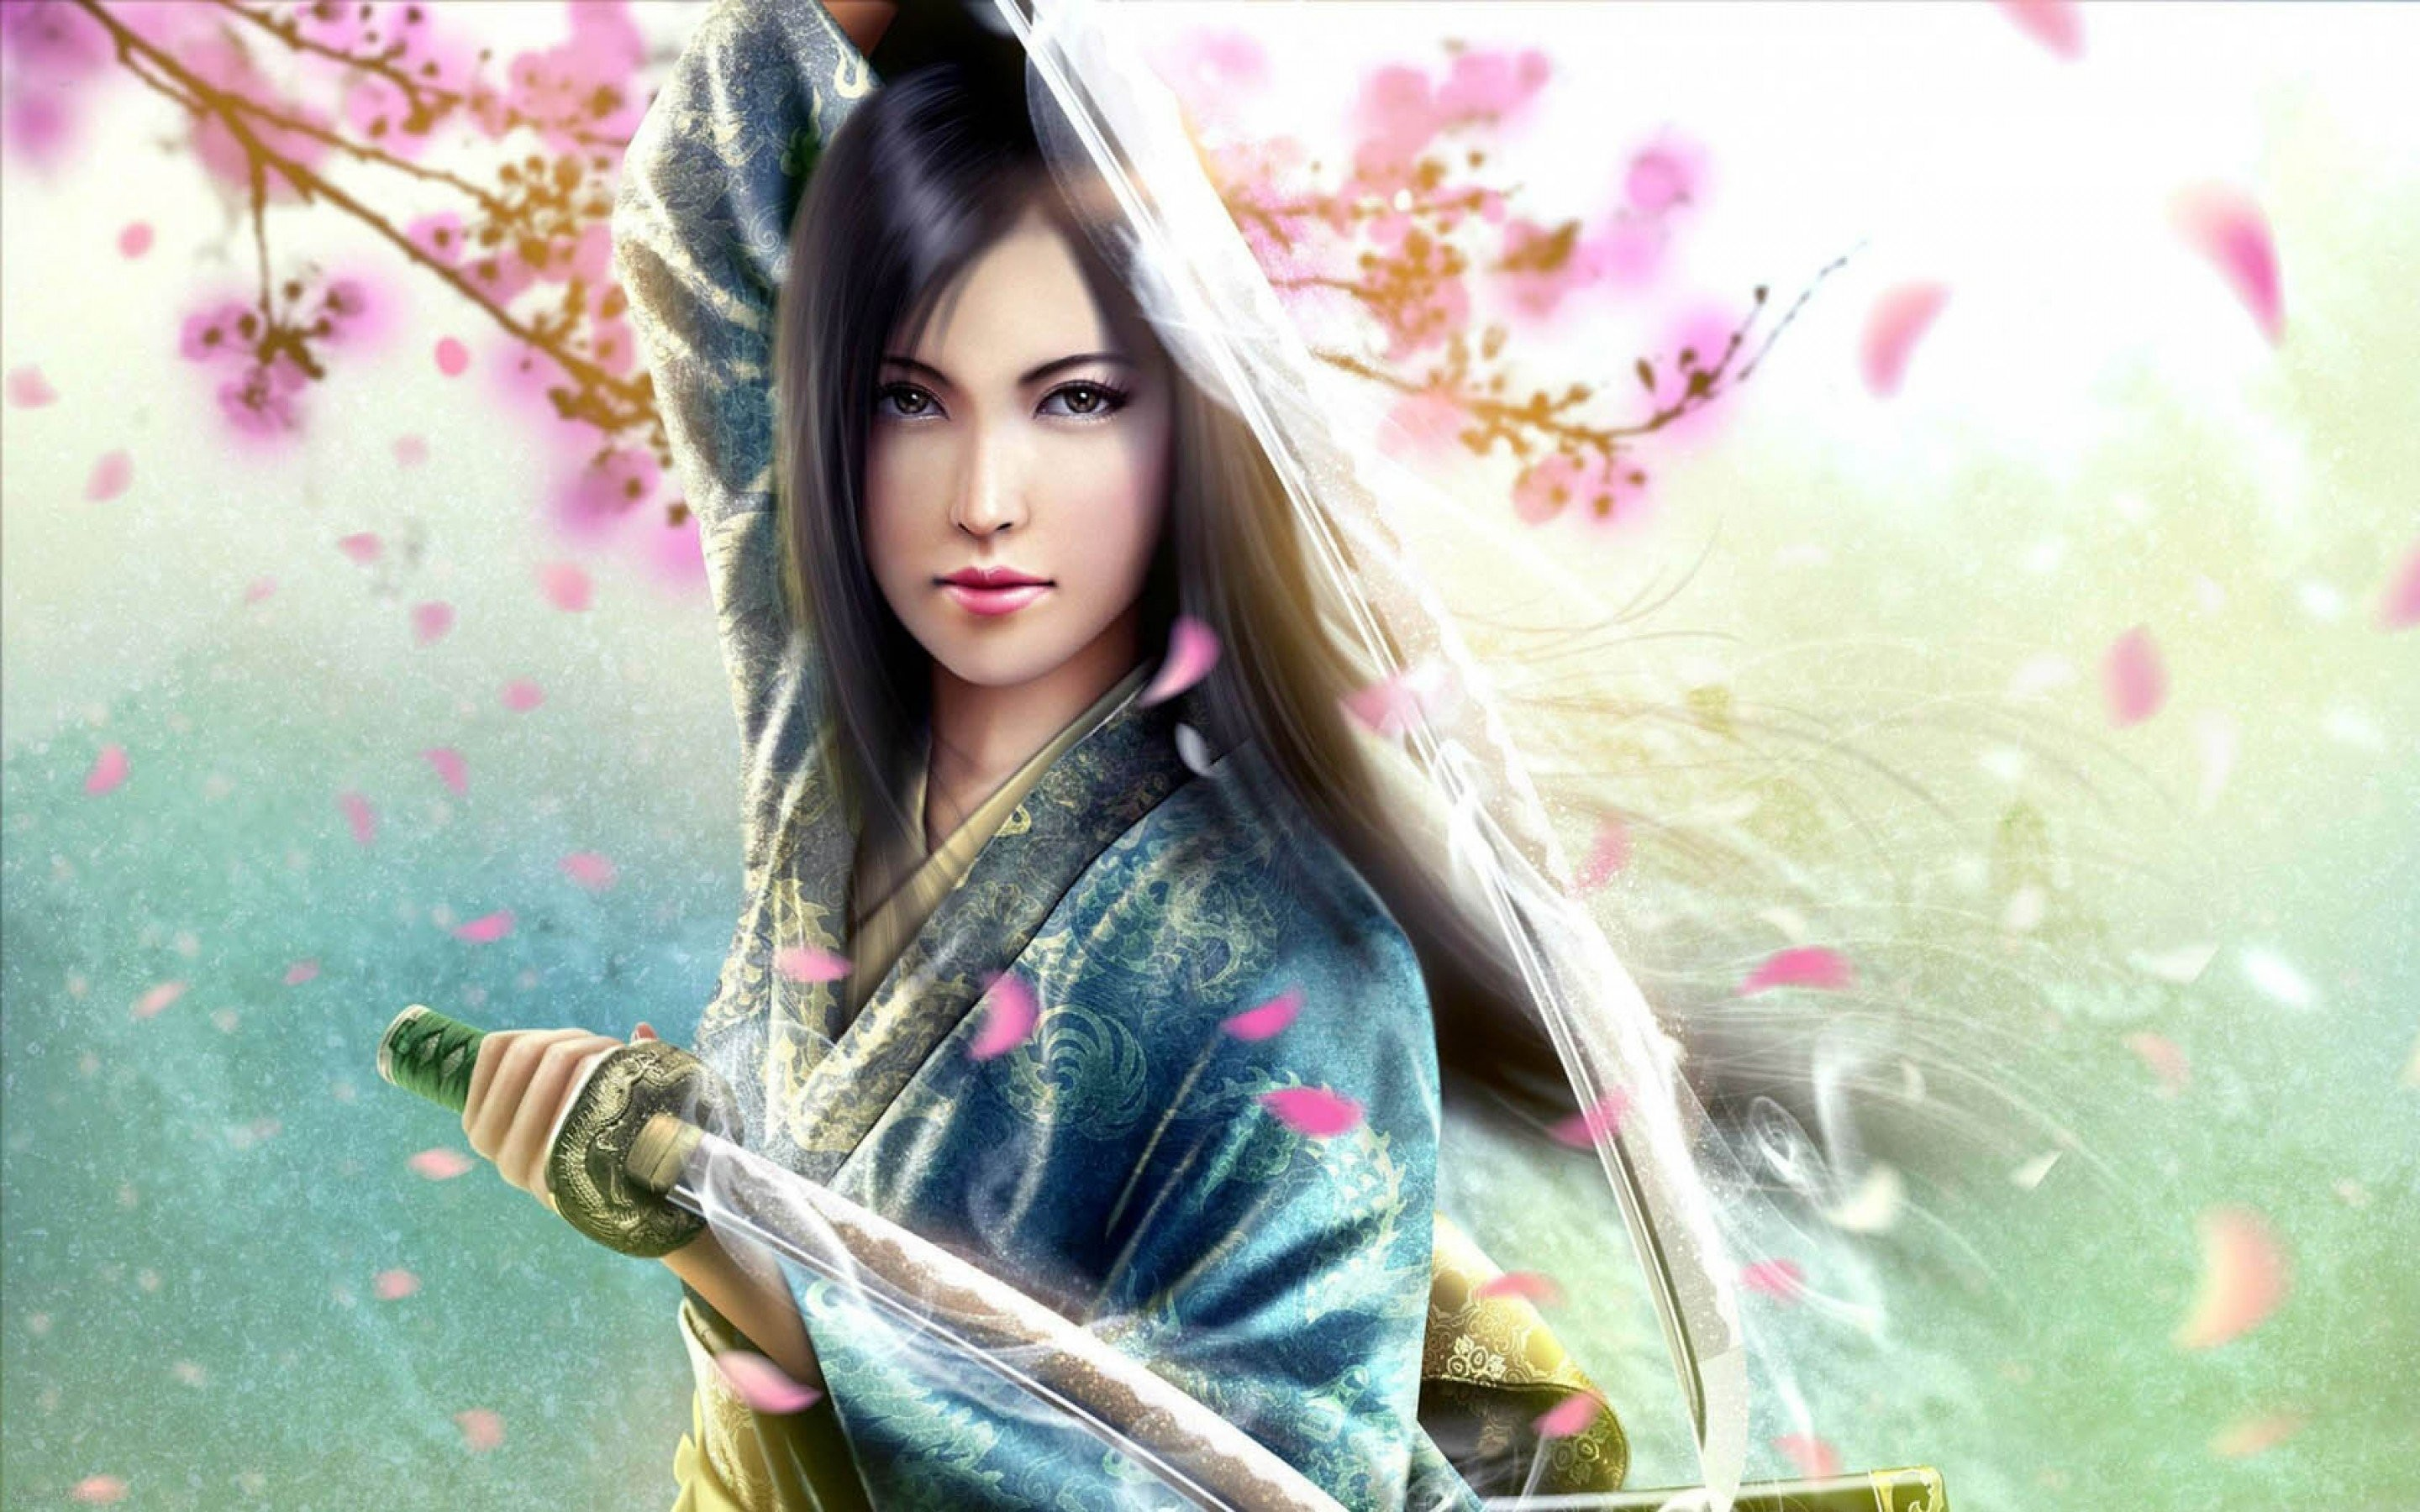 Best wallpaper gallery with Samurai Girl Female Warrior and HD wallpapers.  We collected full High Quality pictures and wallpapers for your PC, …